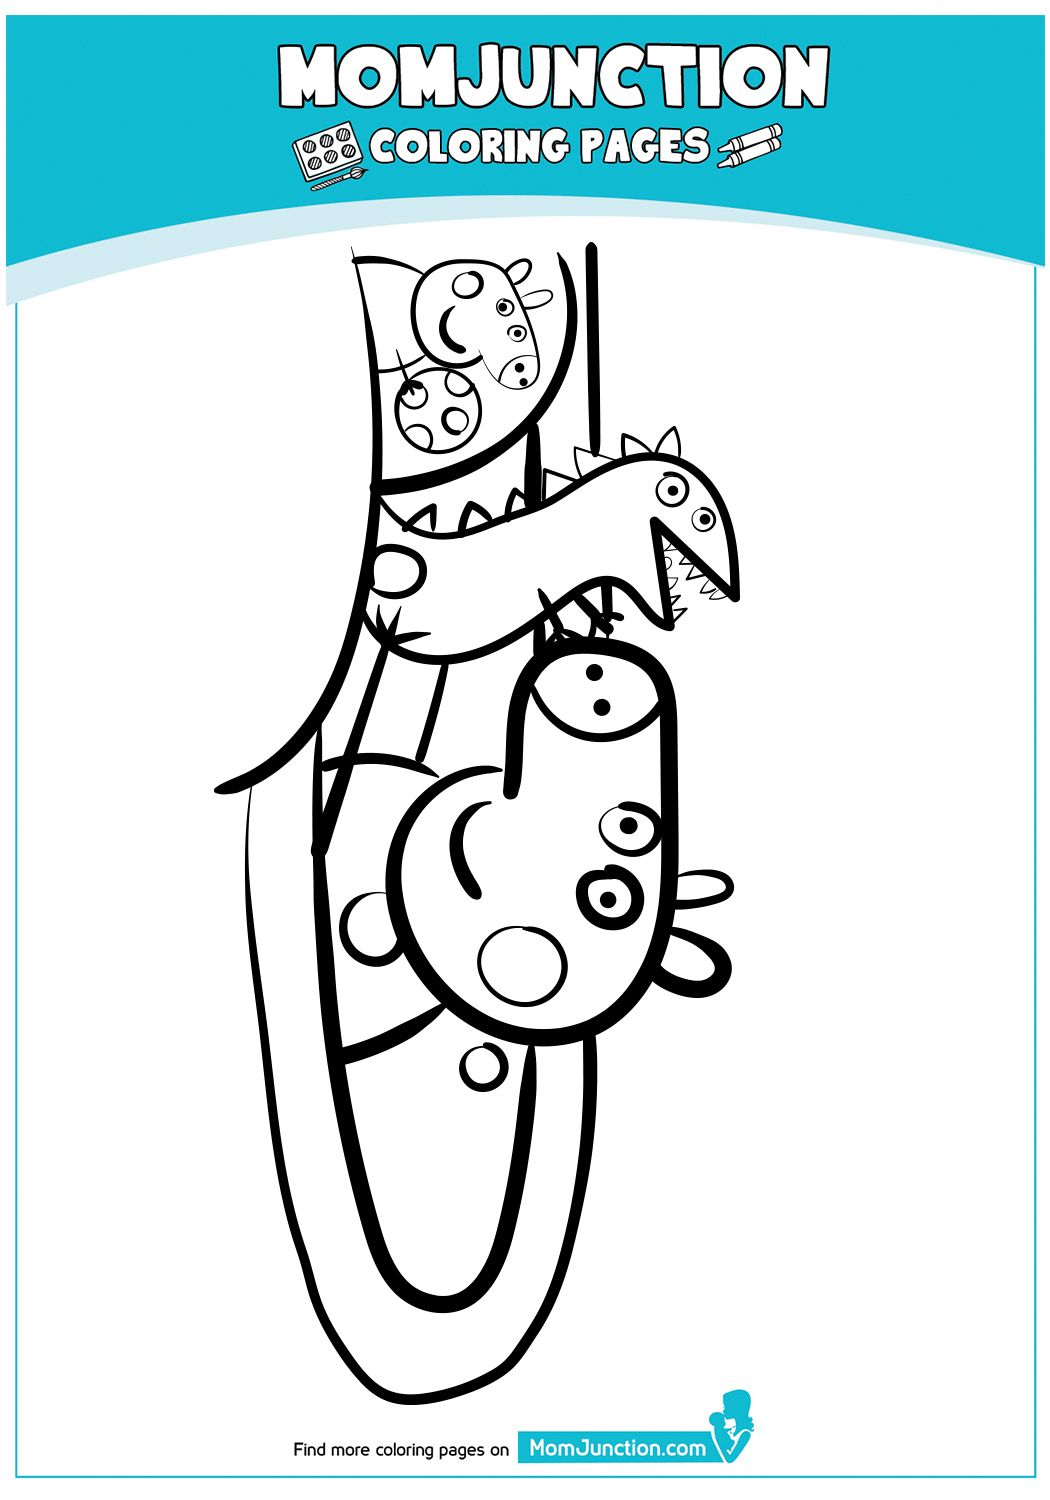 The Peppa Pig Coloring Page Peppa Pig Coloring Pages Peppa Pig Colouring Coloring Pages